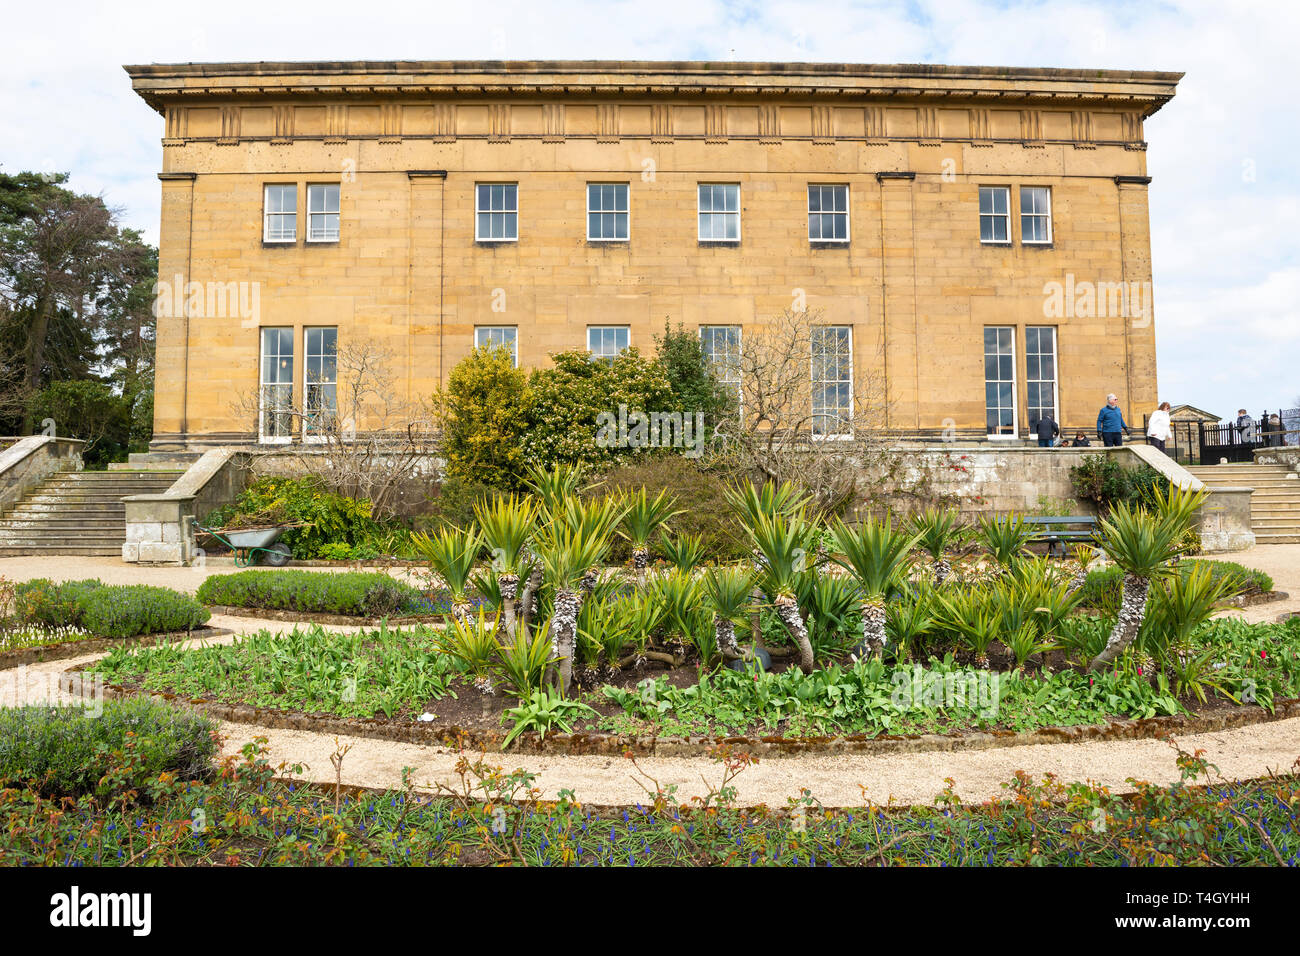 West elevation and terace garden of Belsay Hall, an early 19th Century mansion house, in Northumberland, England, UK - Stock Image